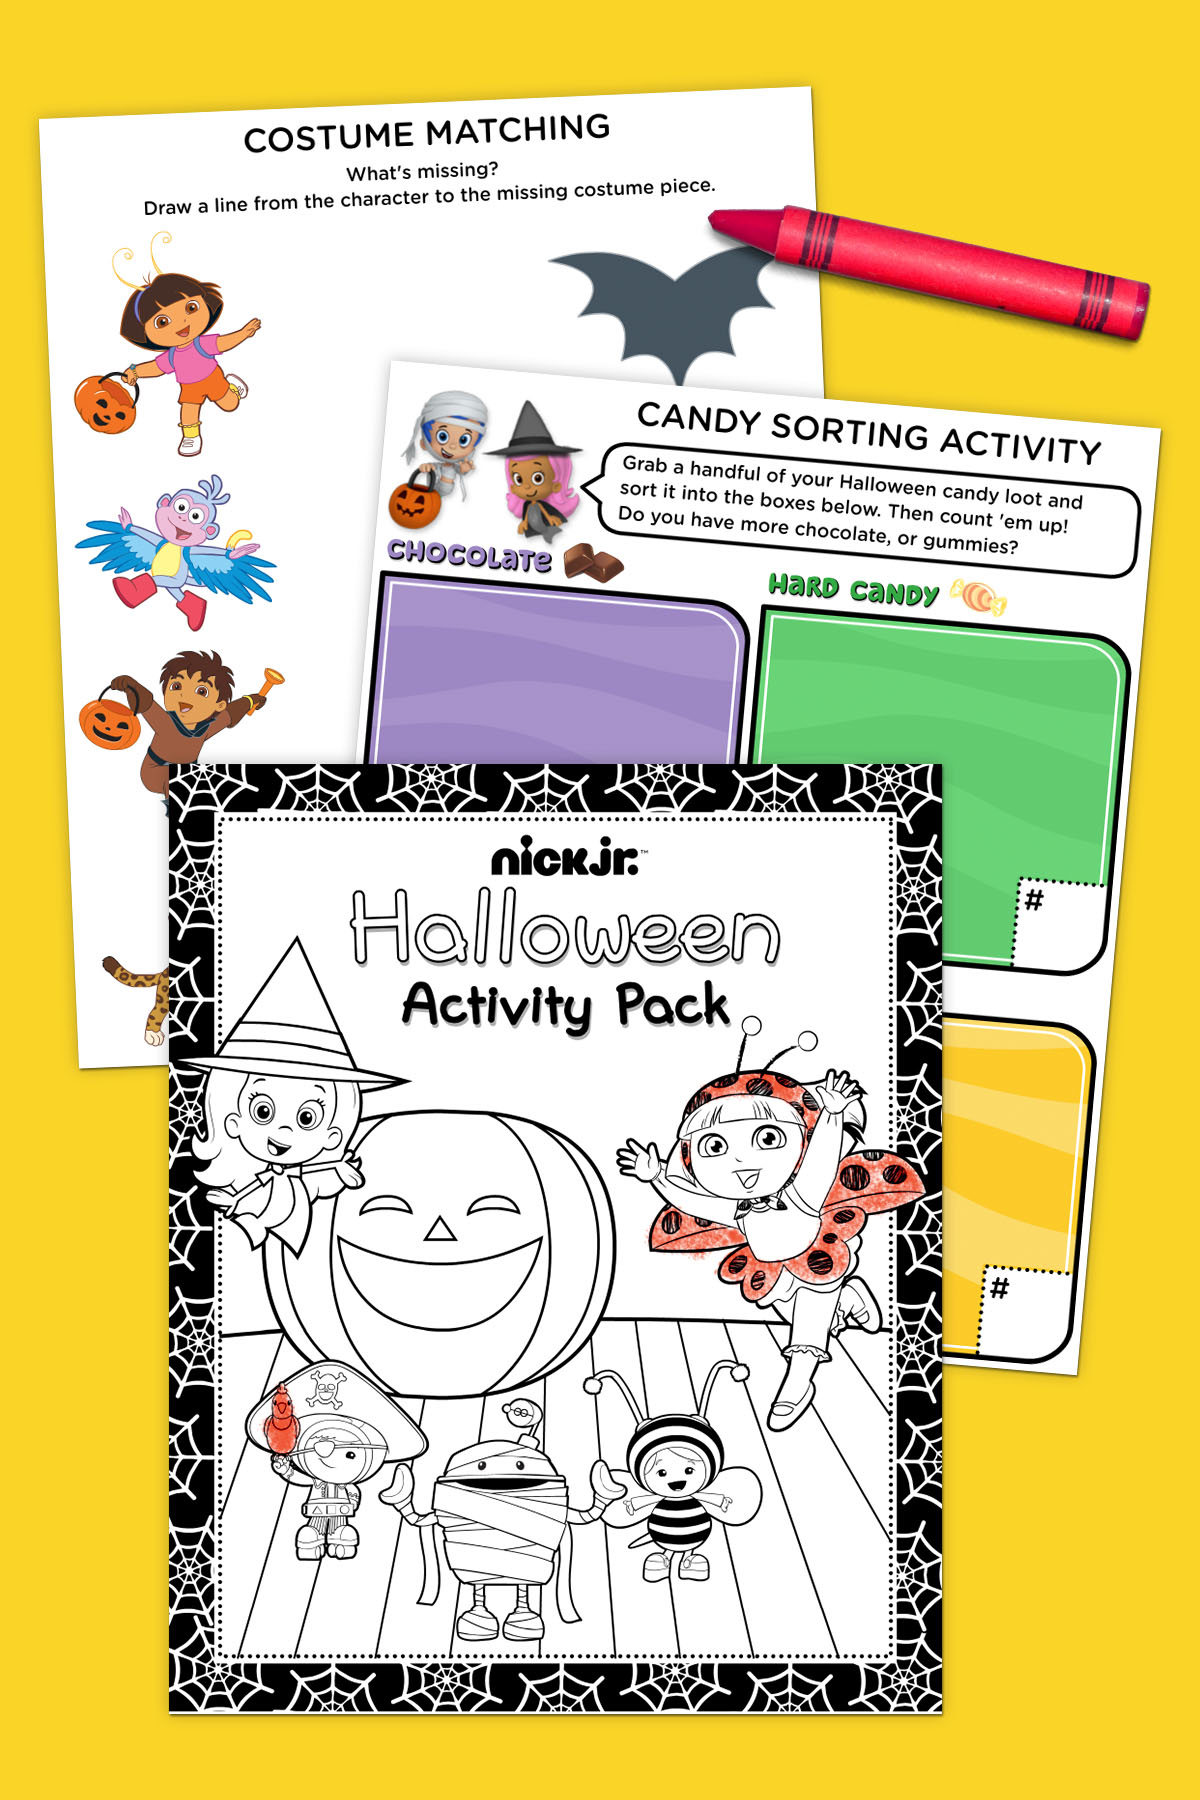 Nick Jr. Halloween Activity Pack | Nickelodeon Parents